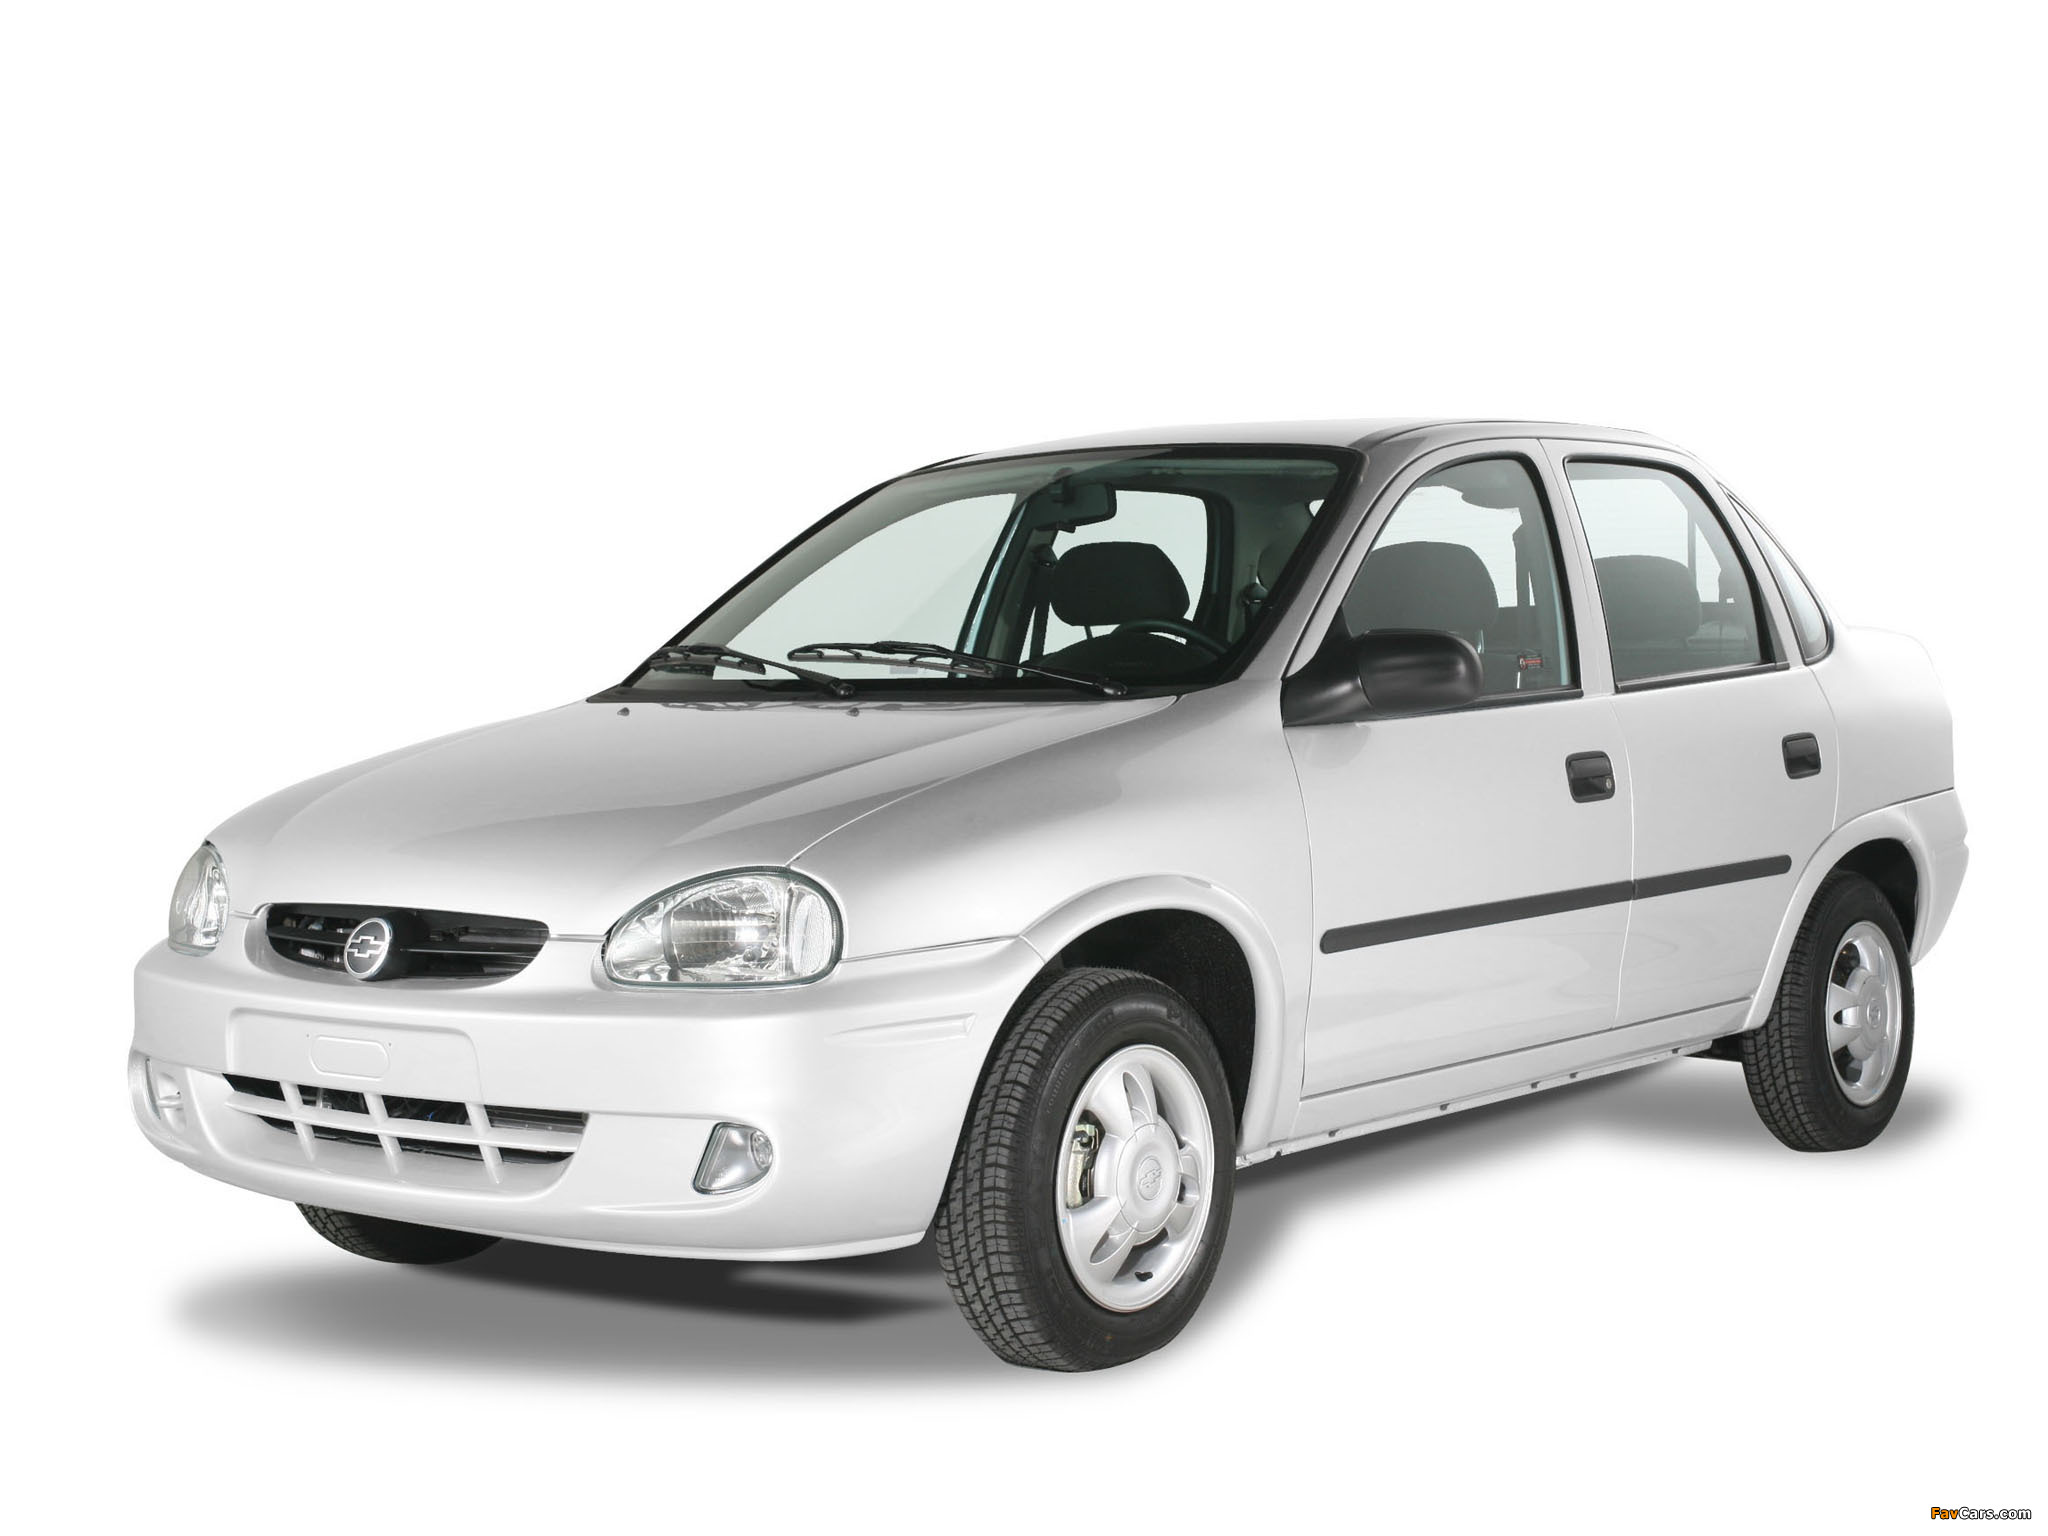 Chevrolet Corsa   pictures, information and specs - Auto-Database.com